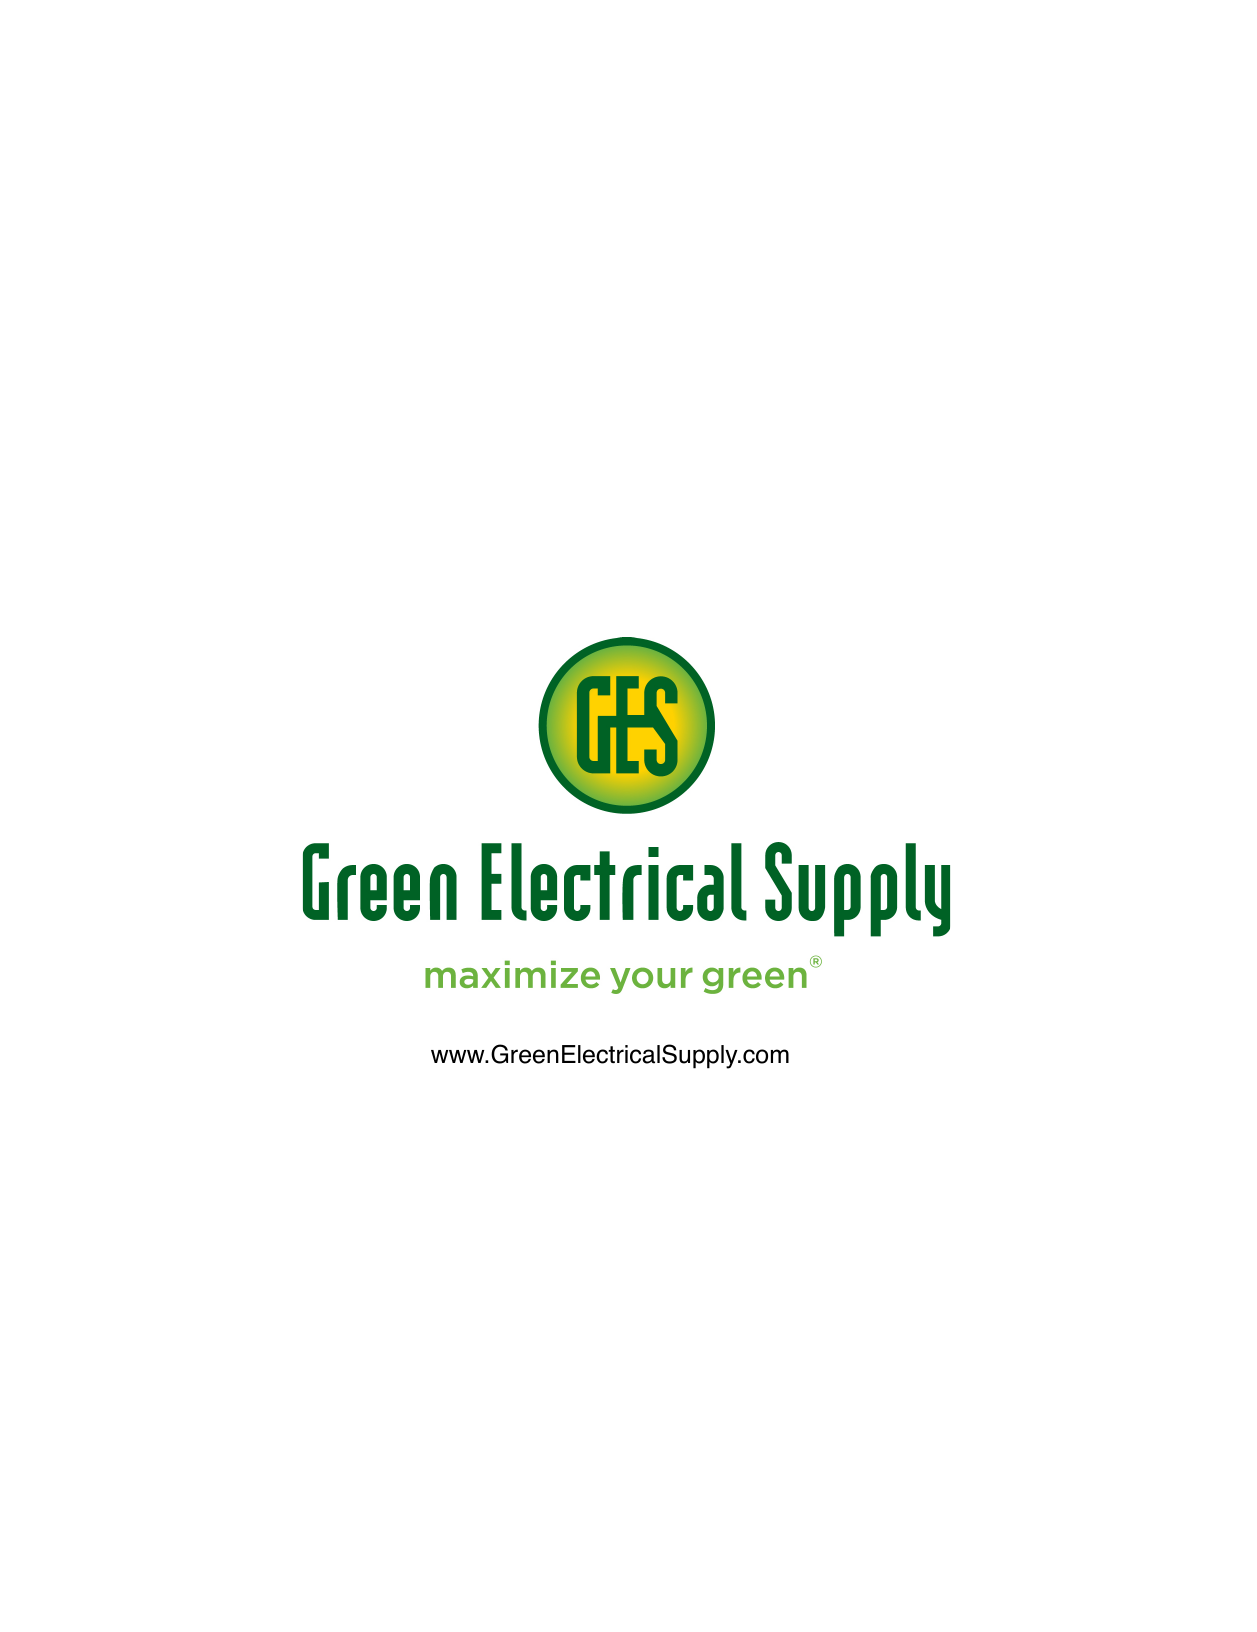 018783127_1 35cc383a85fed8814c552096dd773258 ballast cross reference green electrical supply asb-2040-24-bl-tp wiring diagram at gsmx.co